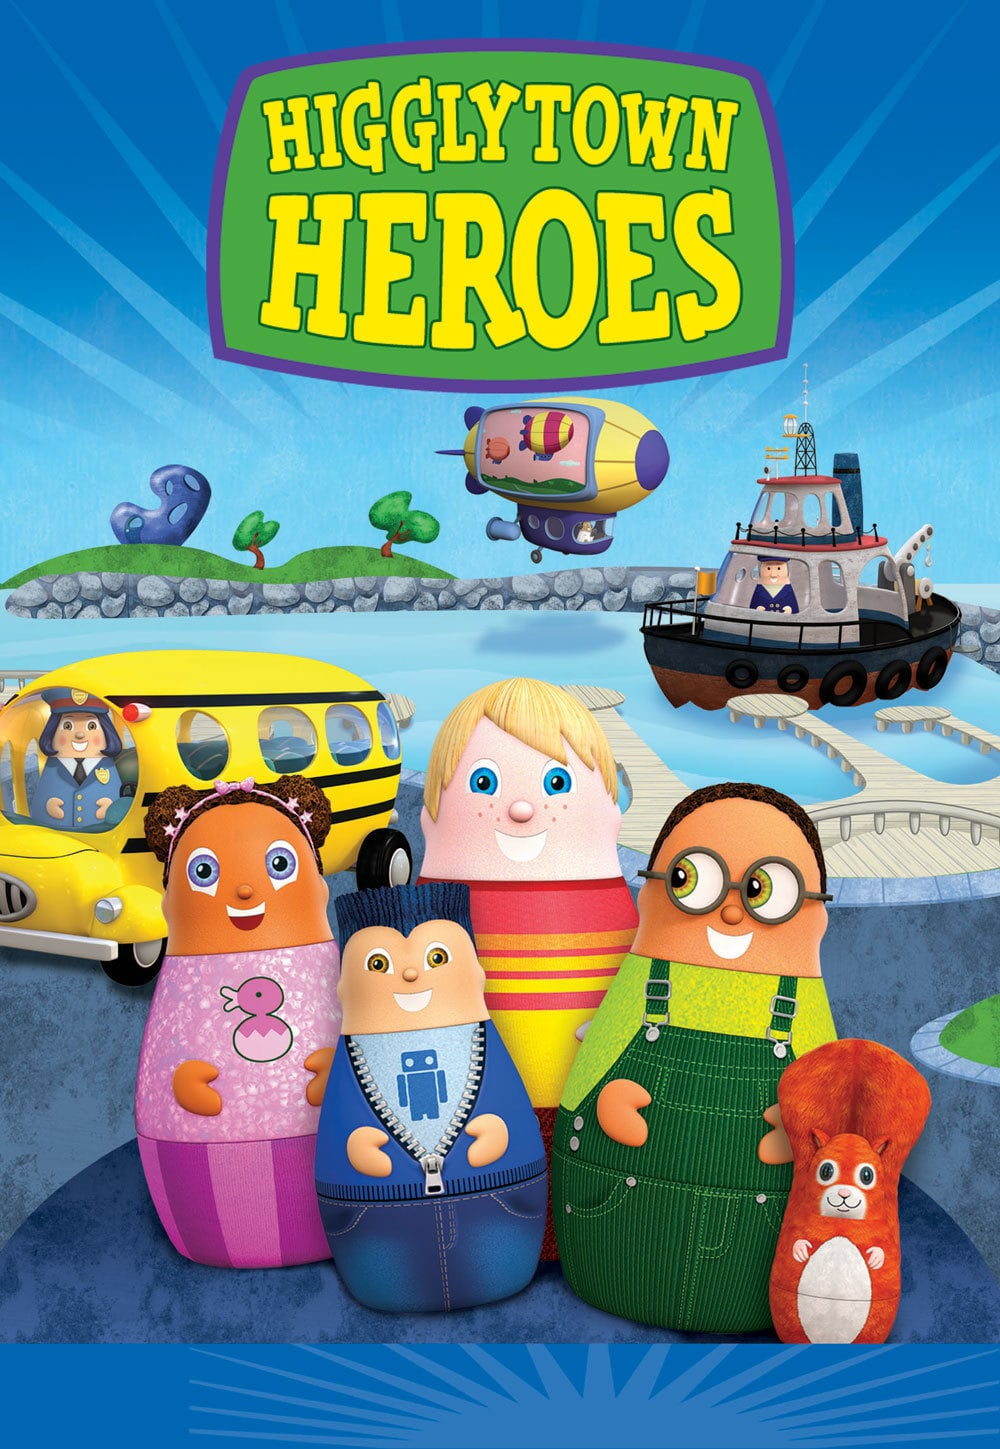 Higglytown Heroes Products